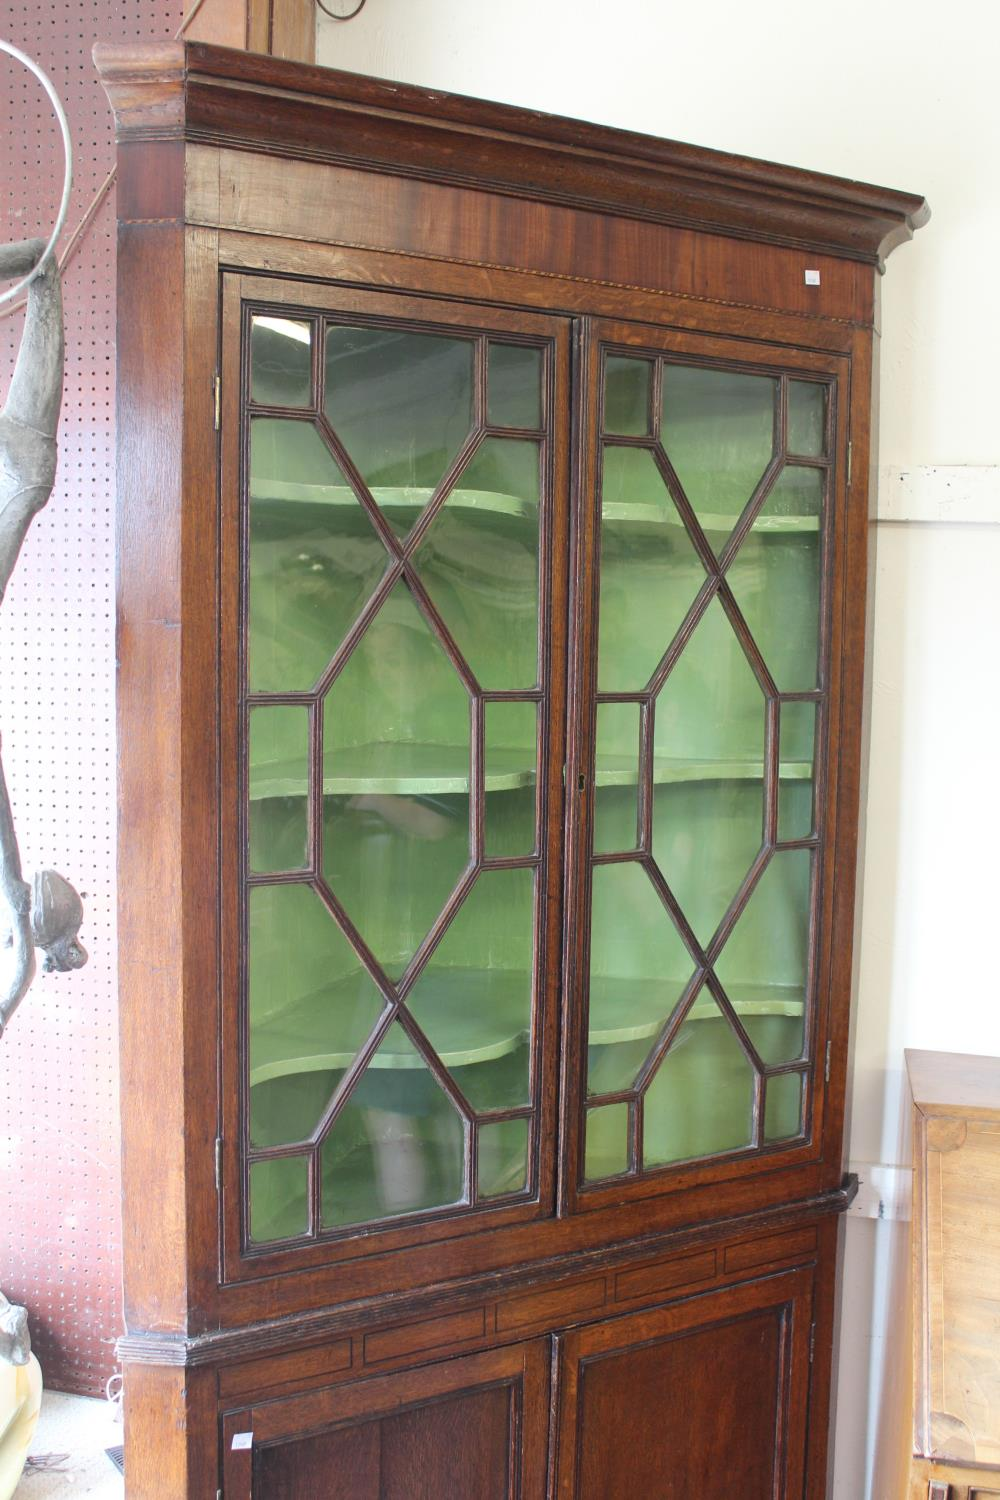 George III oak standing corner cabinet with a moulded cornice above a pair of astragal glazed doors, - Image 2 of 5